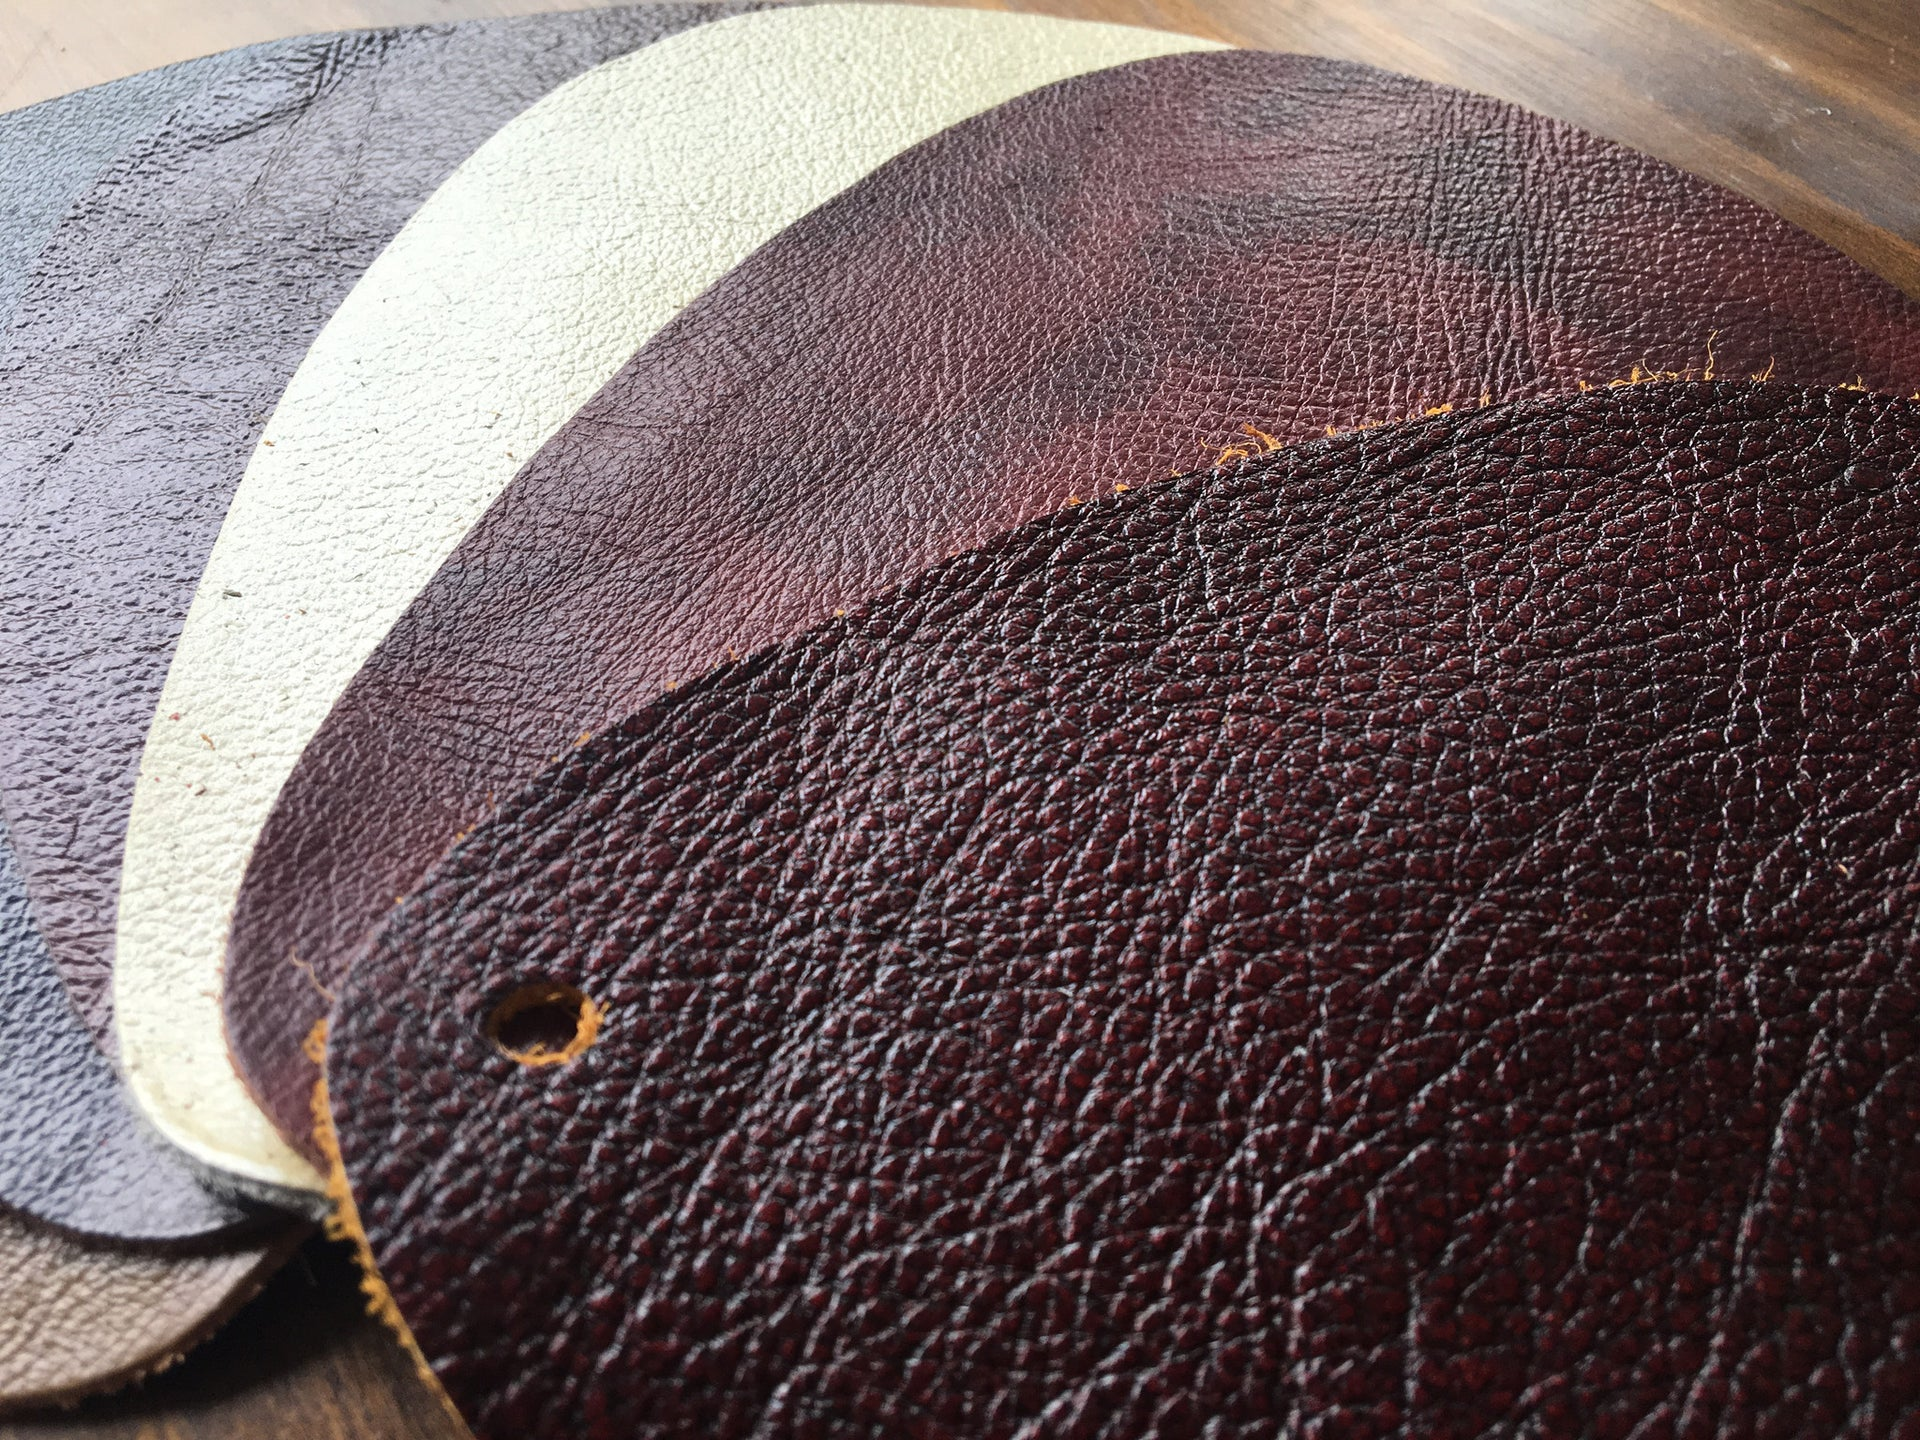 Upholstery Raw Material - Leather 4